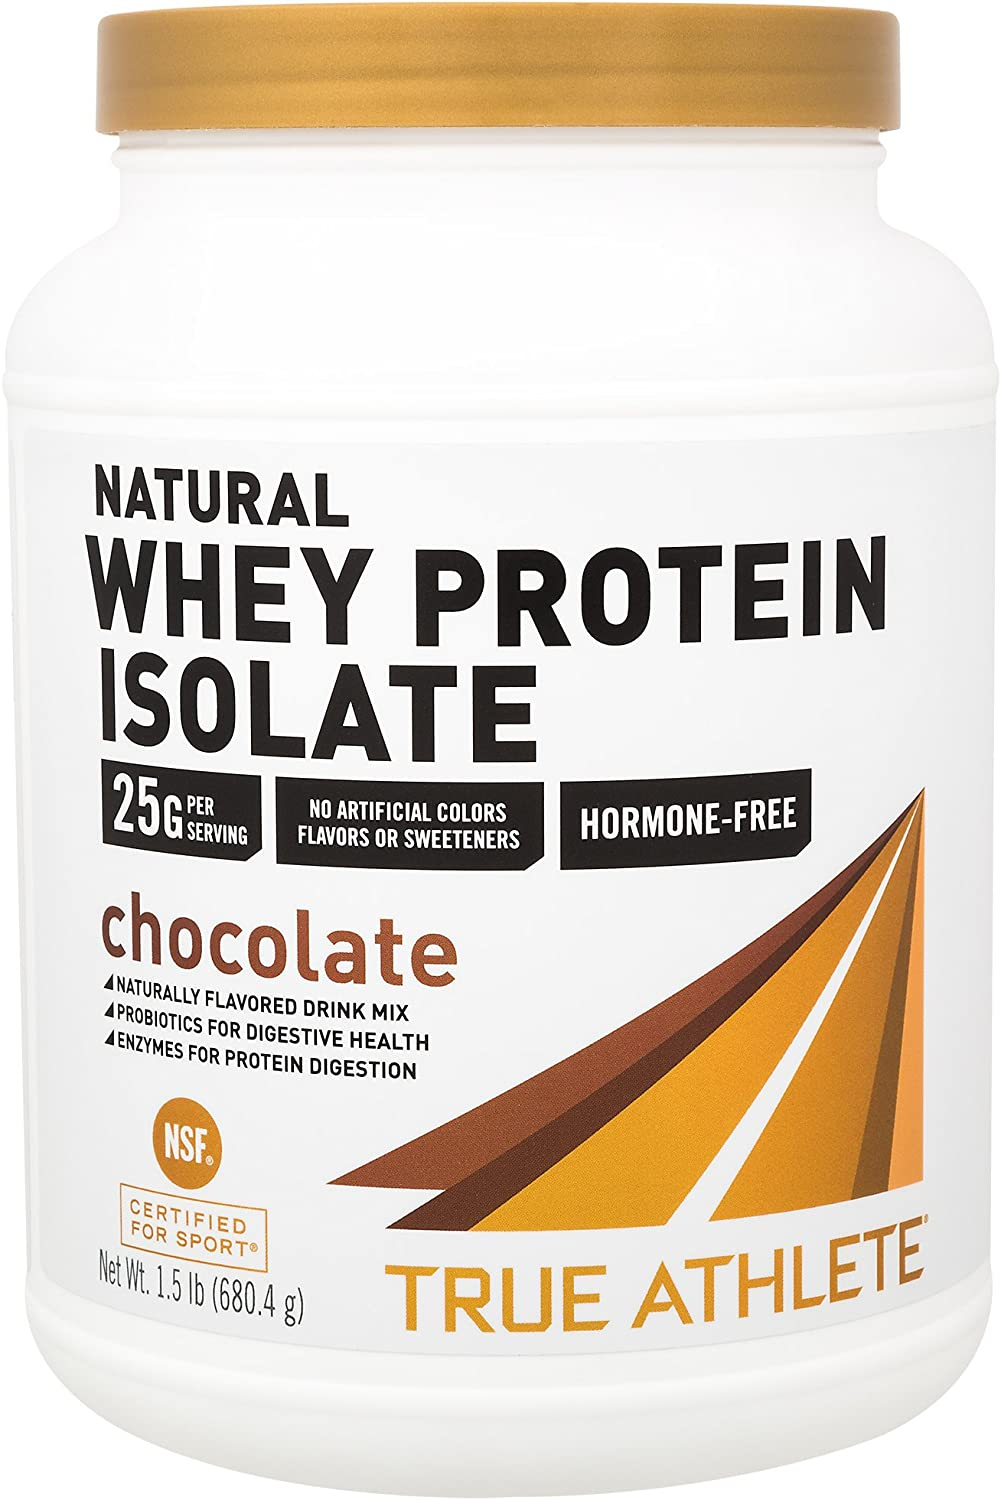 True Athlete Natural Whey Protein Isolate Chocolate, 25g of Protein per Serving Probiotics for Digestive Health, Enzymes for Protein Digestion NSF Certified for Sport (1.5 Pound Powder)